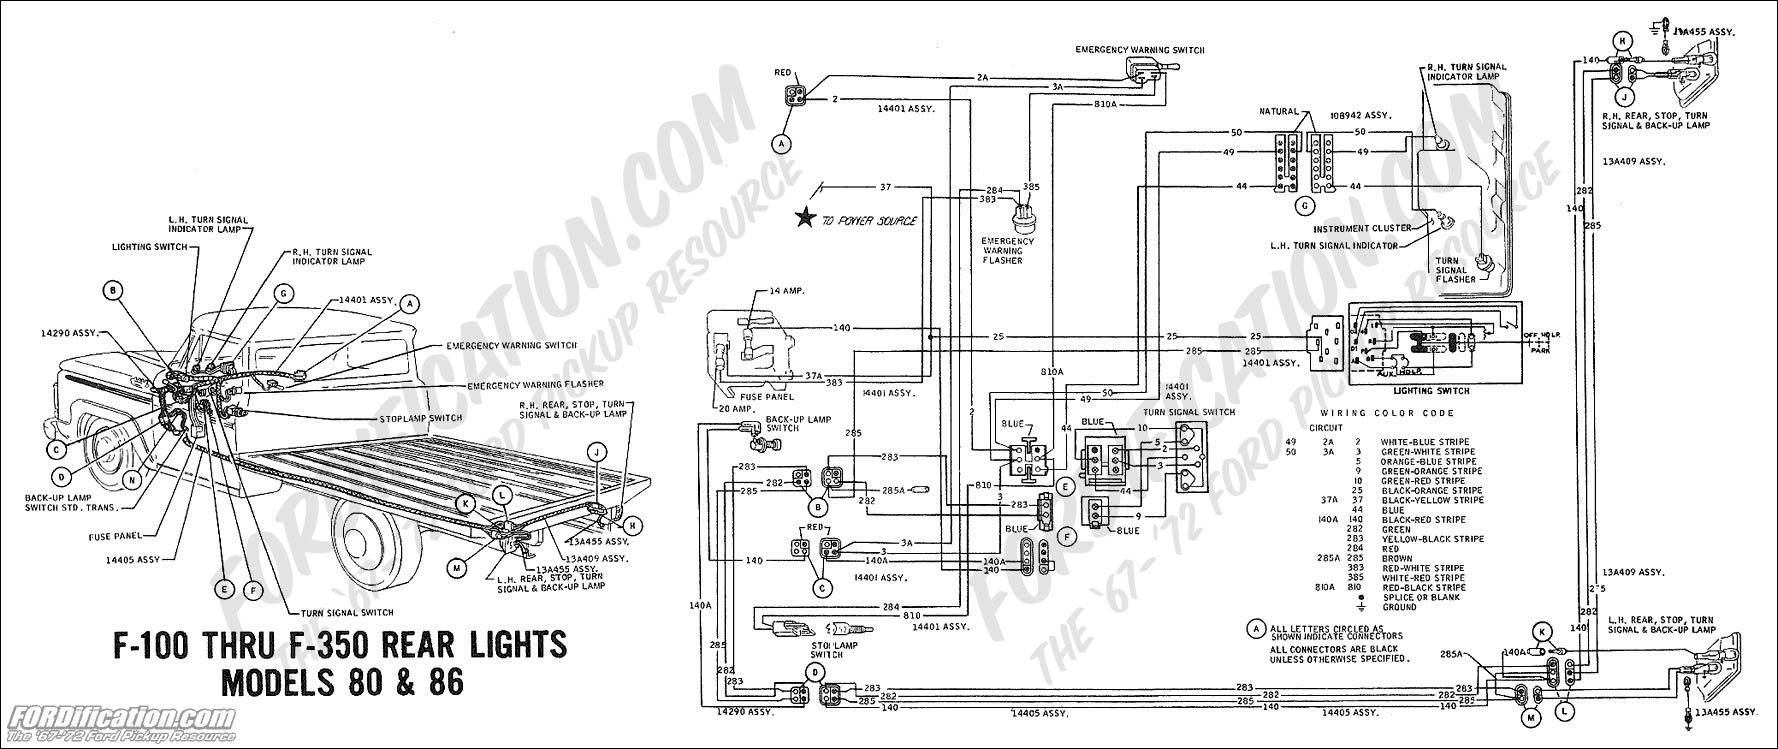 wiring_69rearlights mdls80 86 1994 f700 wiring diagram on 1994 download wirning diagrams  at nearapp.co